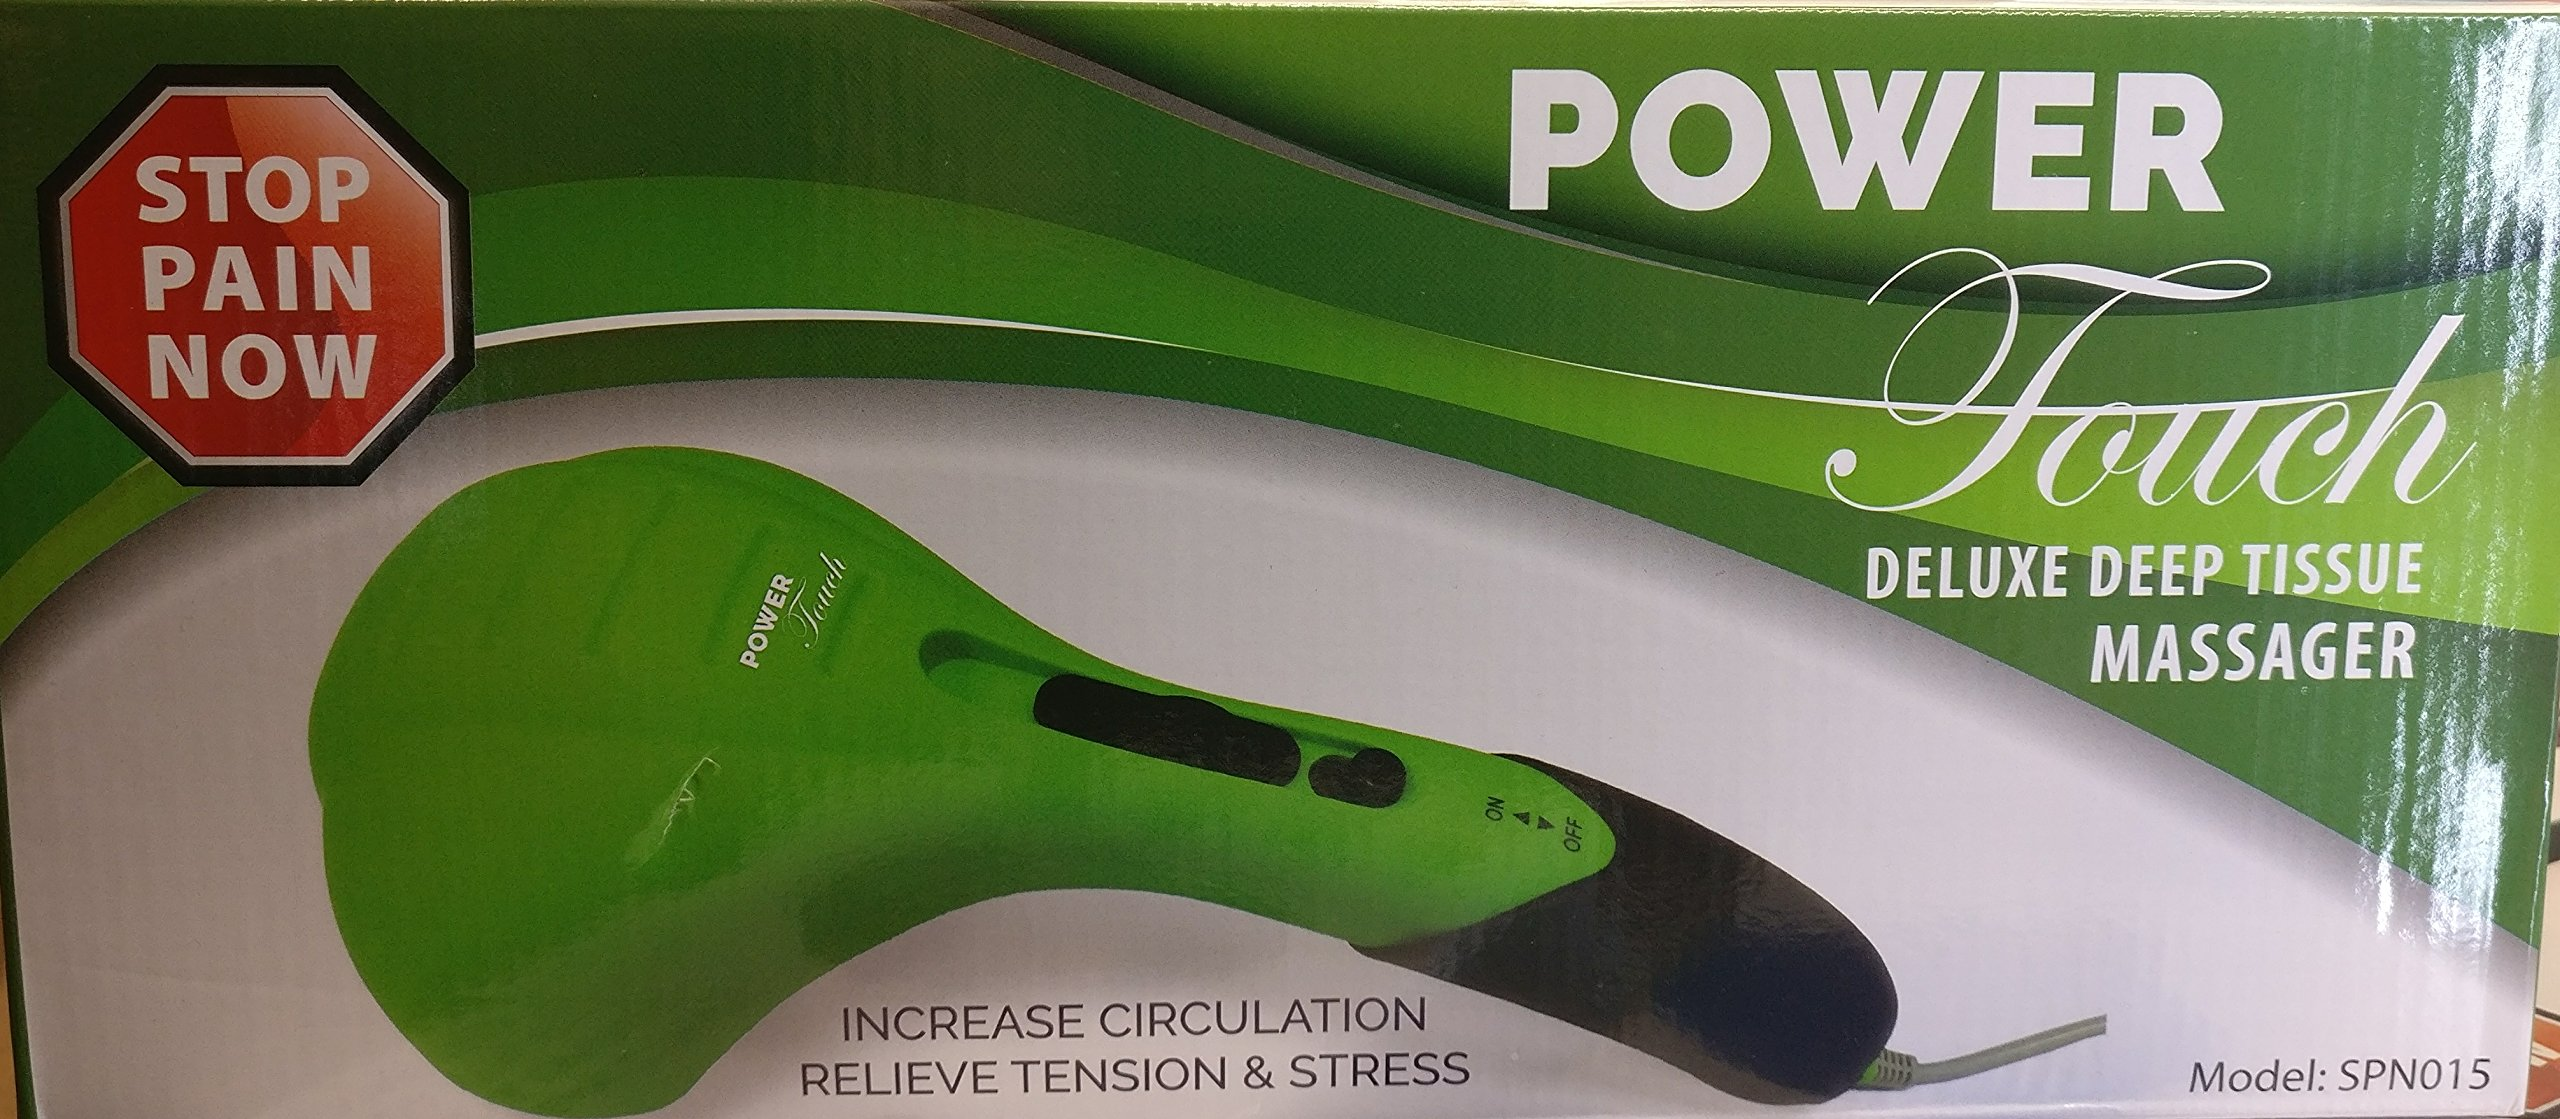 Power Touch Deluxe Deep Tissue Massager Green